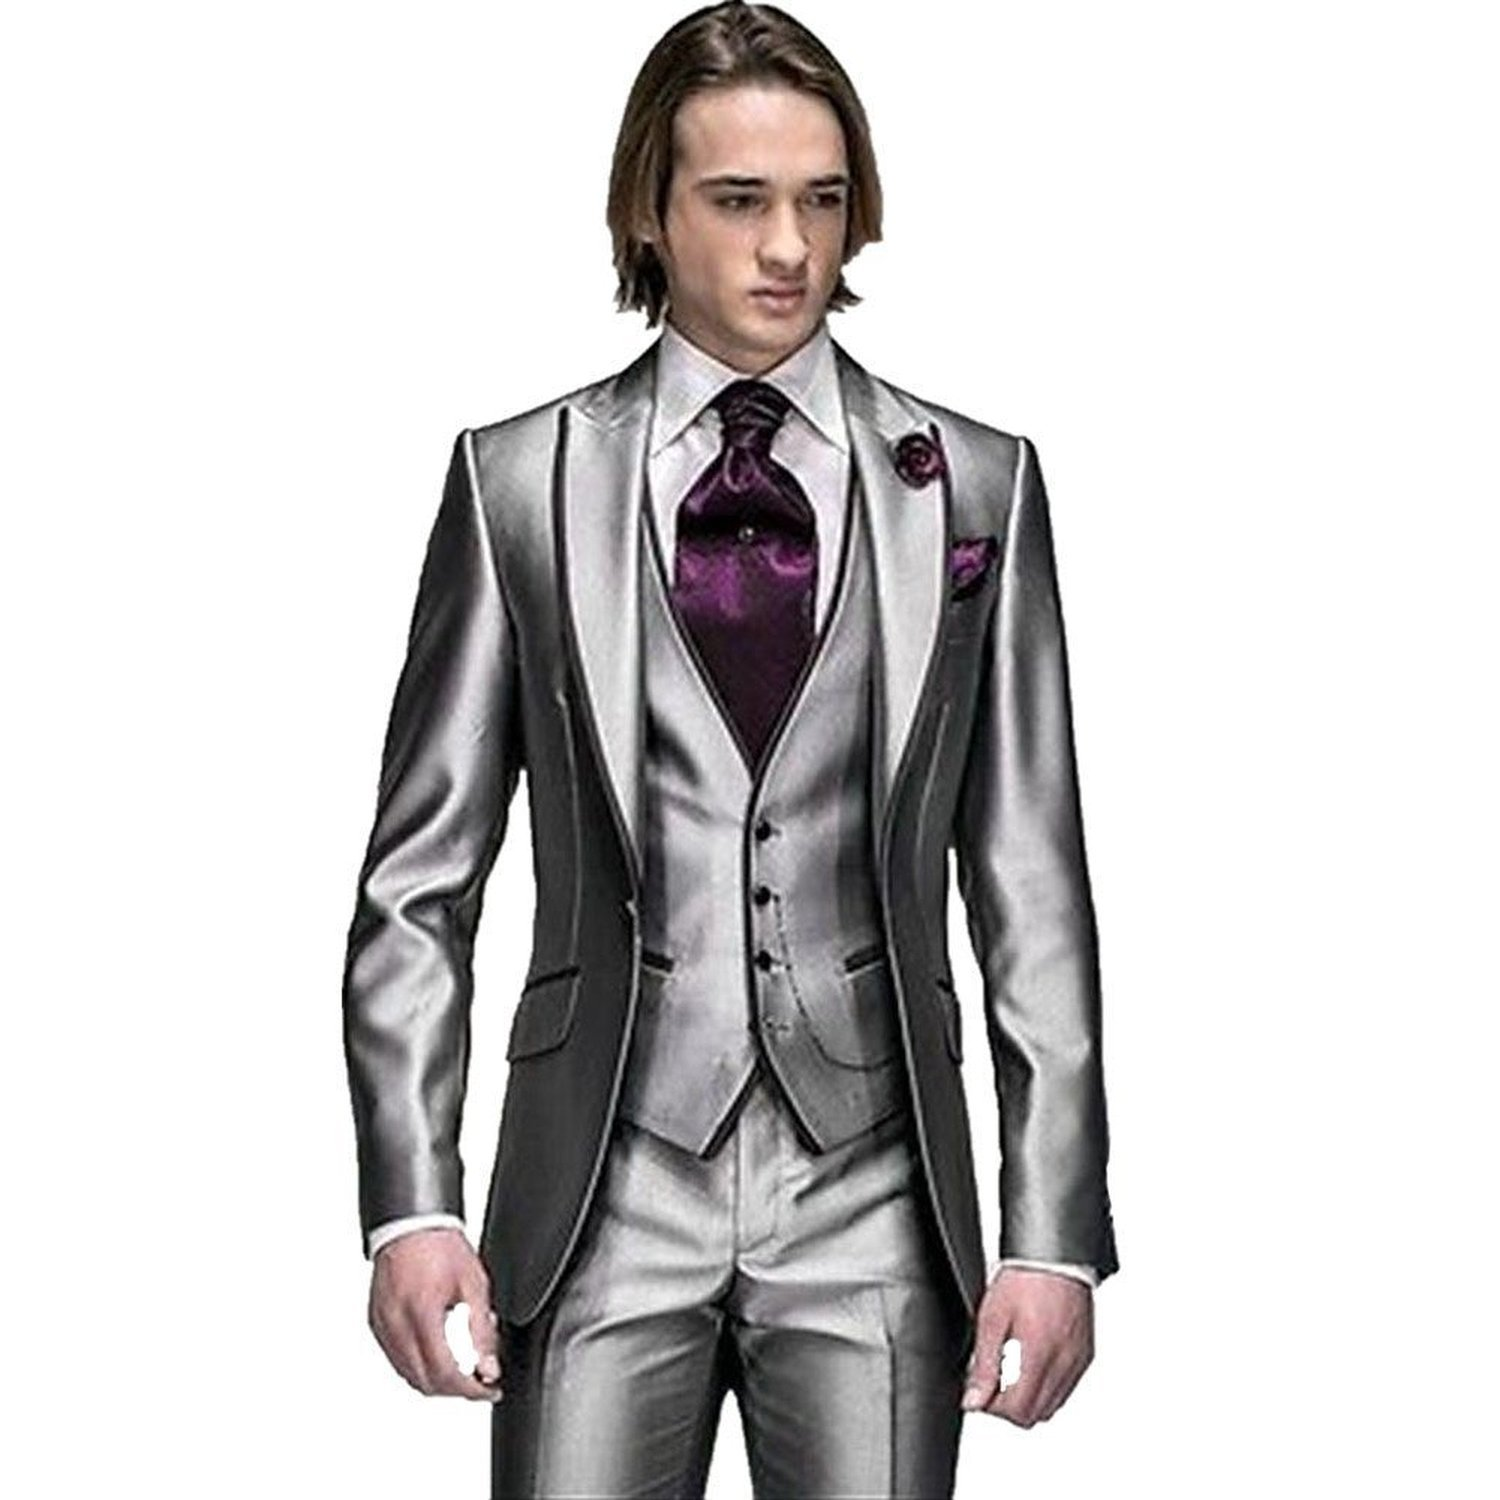 Mys mens custom made groomsman tuxedo suit pants vest and tie set mys mens custom made groomsman tuxedo suit pants vest and tie set silver at amazon mens clothing store junglespirit Image collections